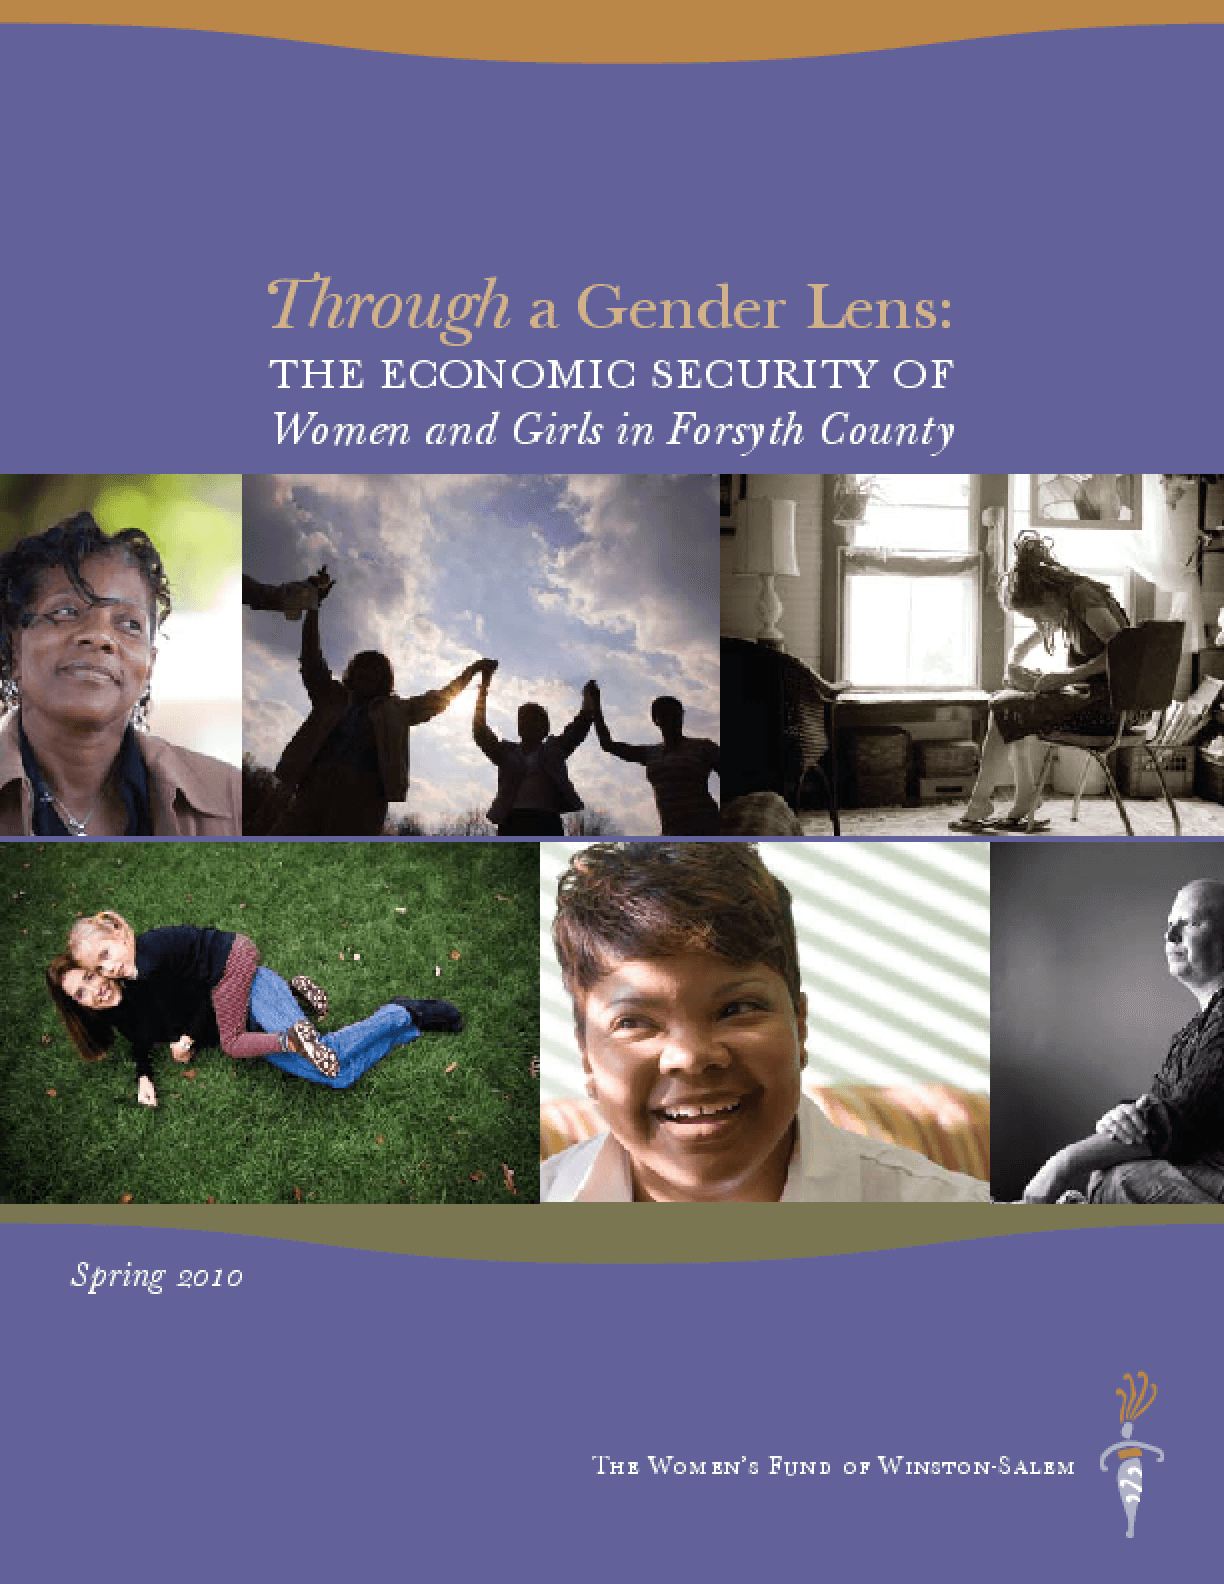 Through a Gender Lens: The Economic Security of Women and Girls in Forsyth County